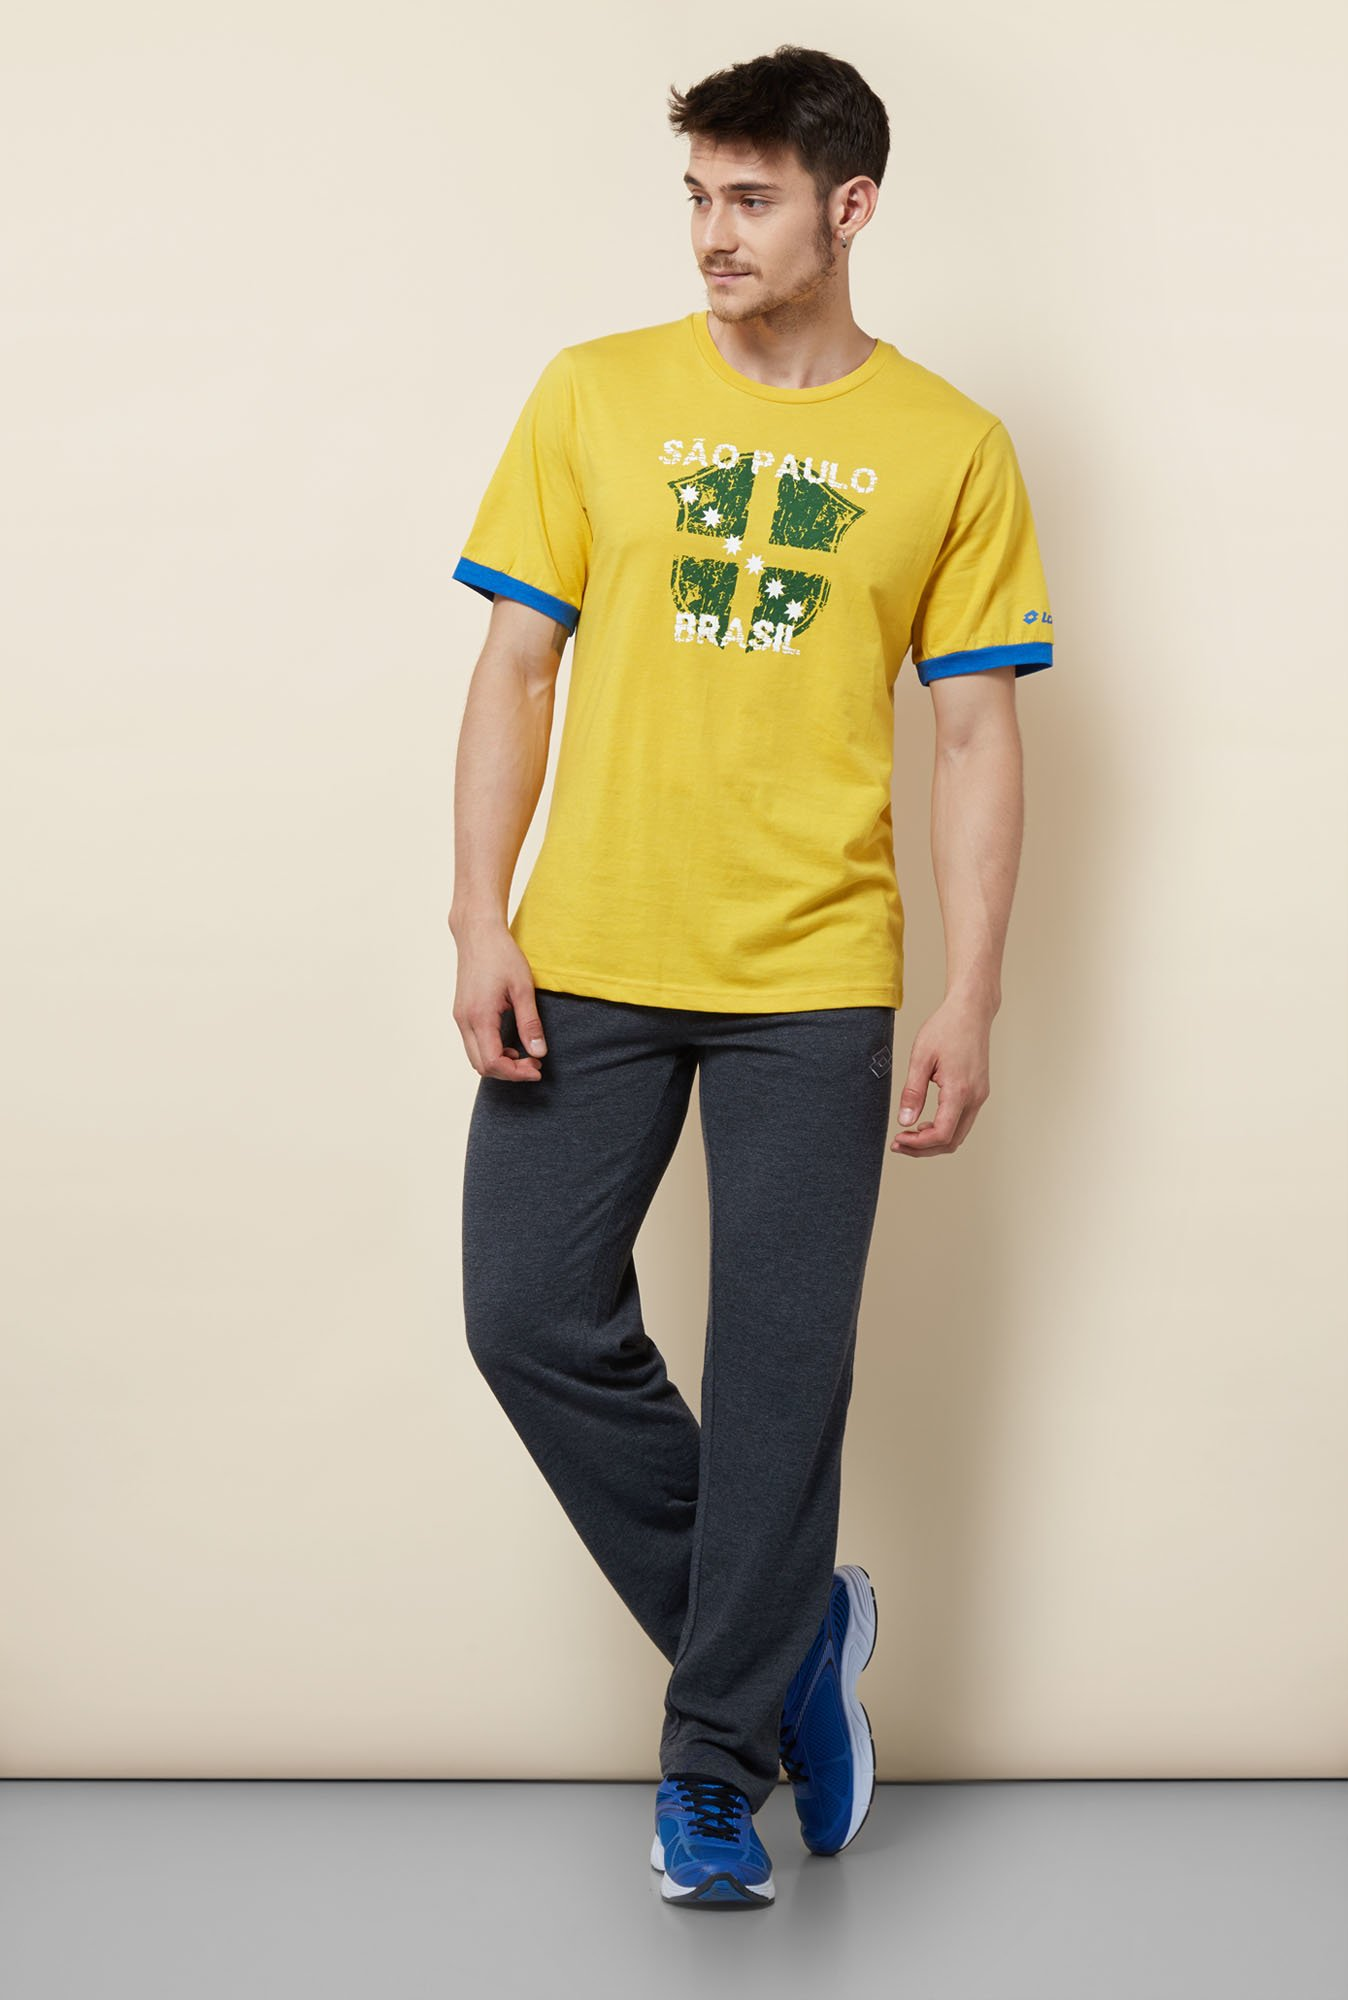 Lotto Yellow Printed Sports T Shirt